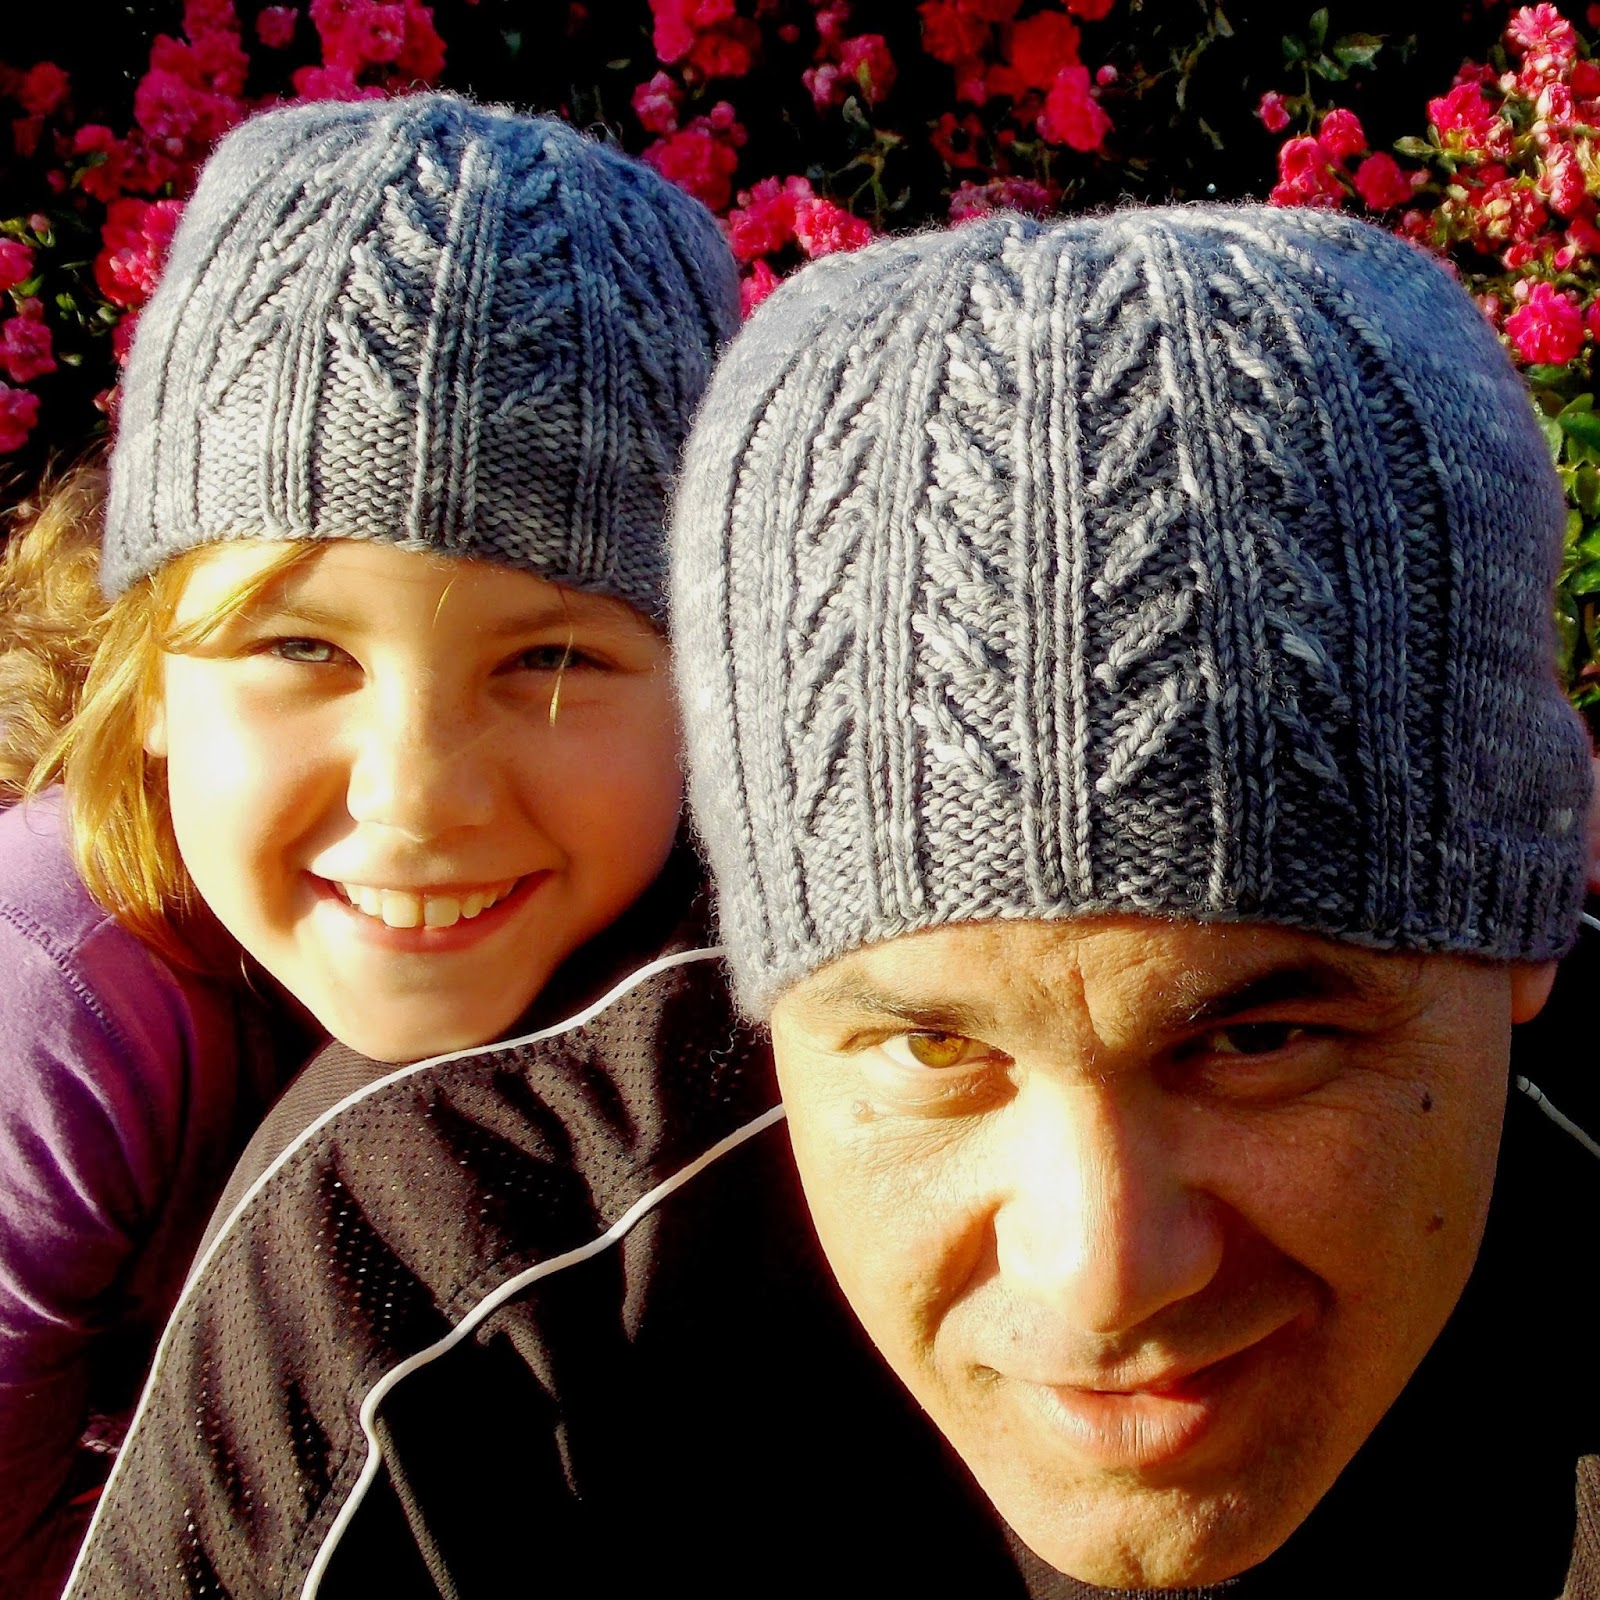 Kauri by Gabriella Henry. A cabled beanie inspired by the Kauri tree using worsted yarn.